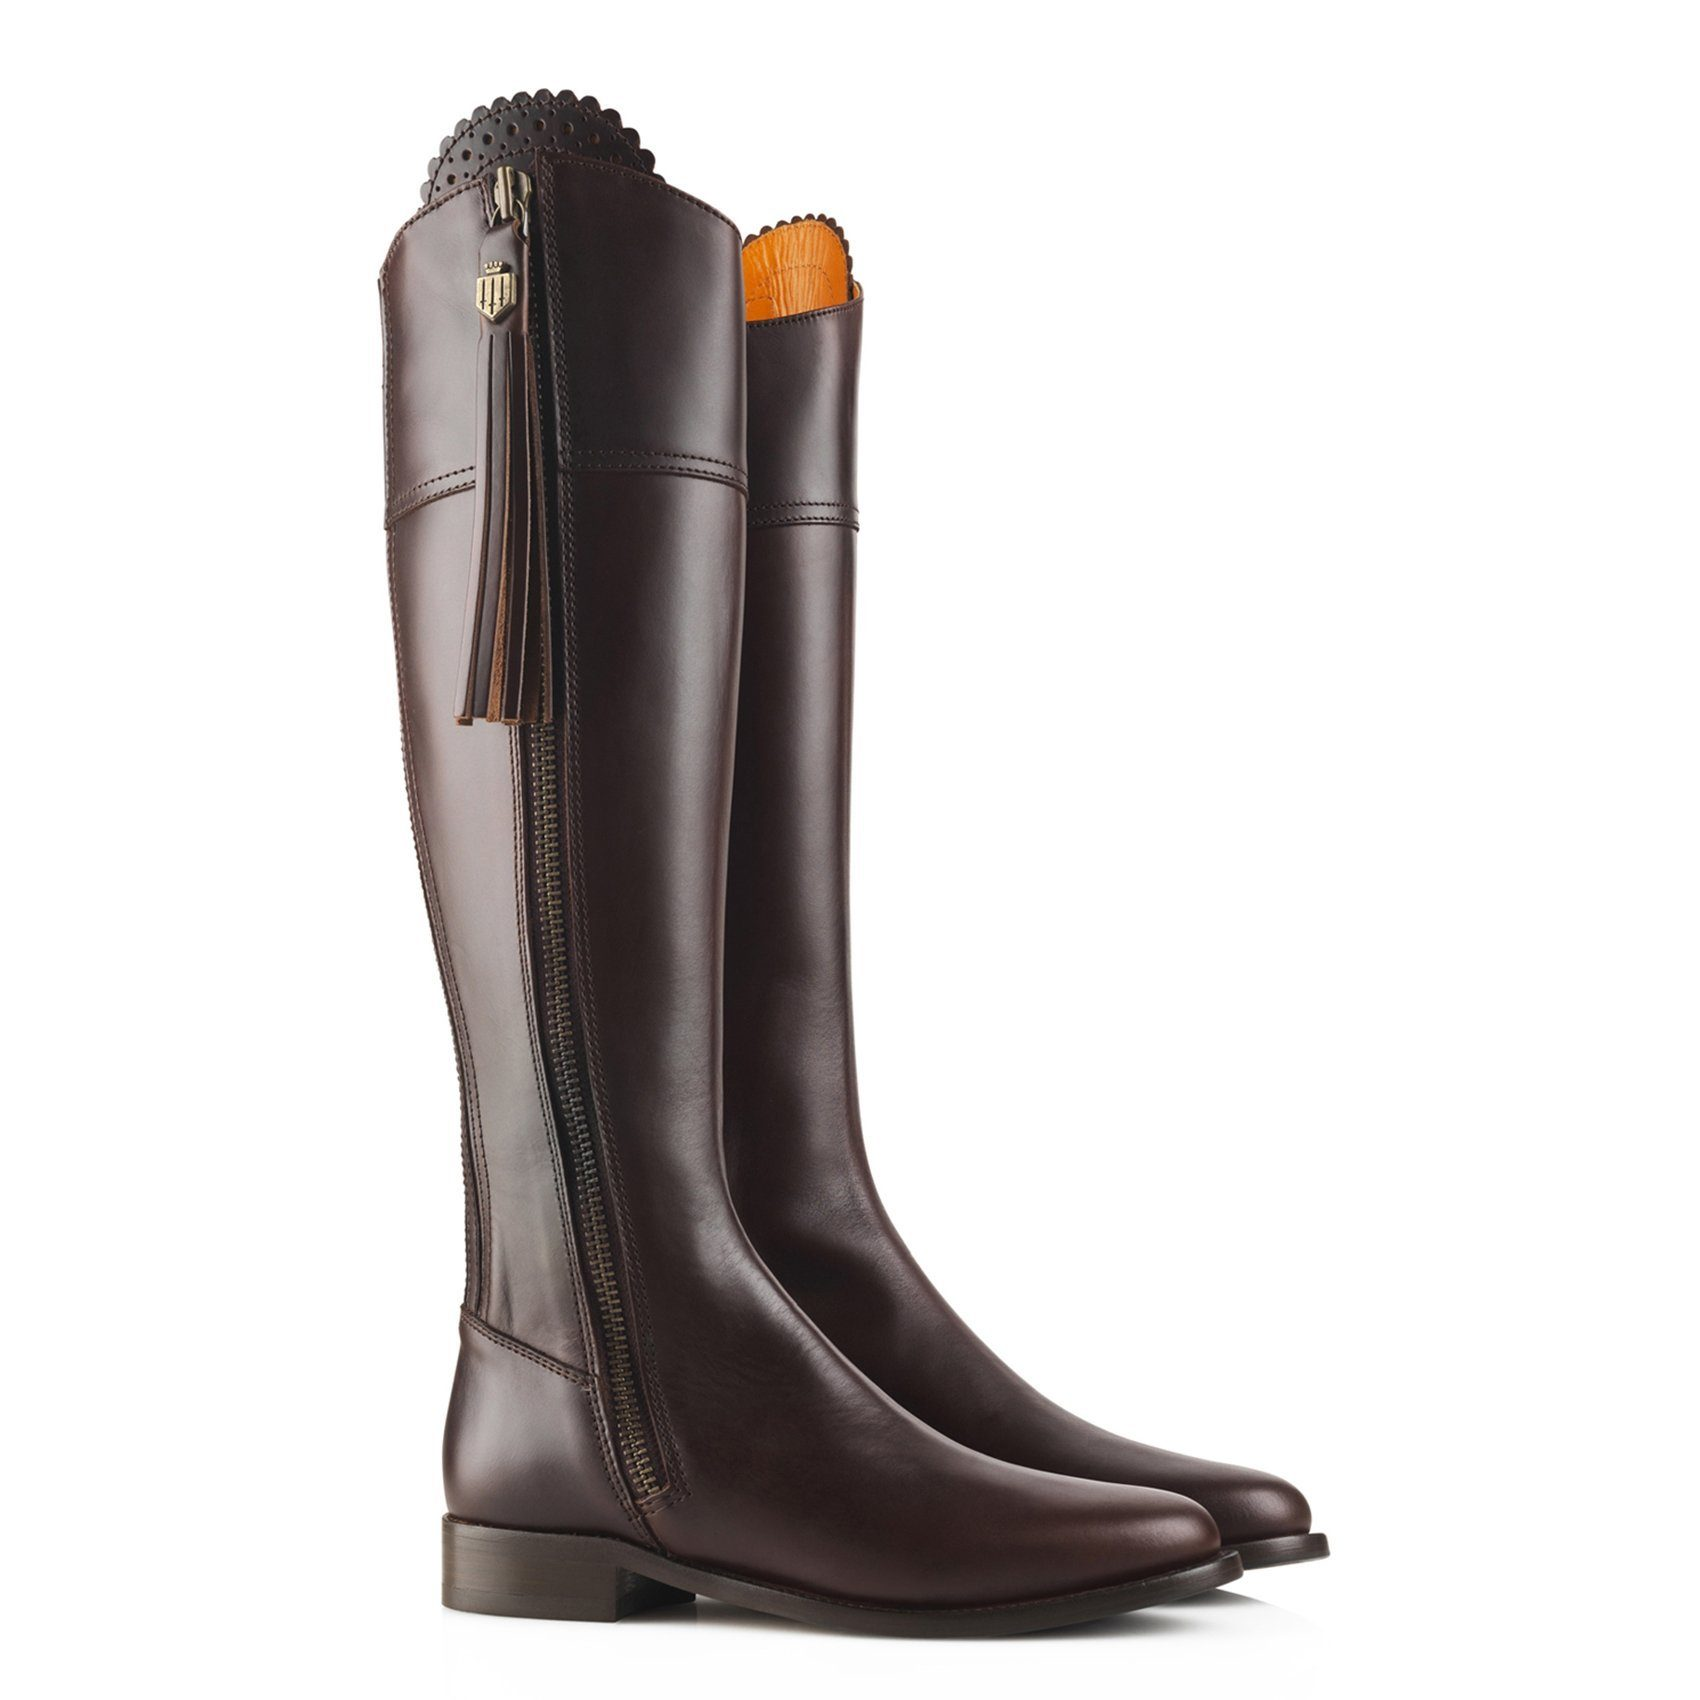 Regina Leather Boot, mahogany/mørkebrun